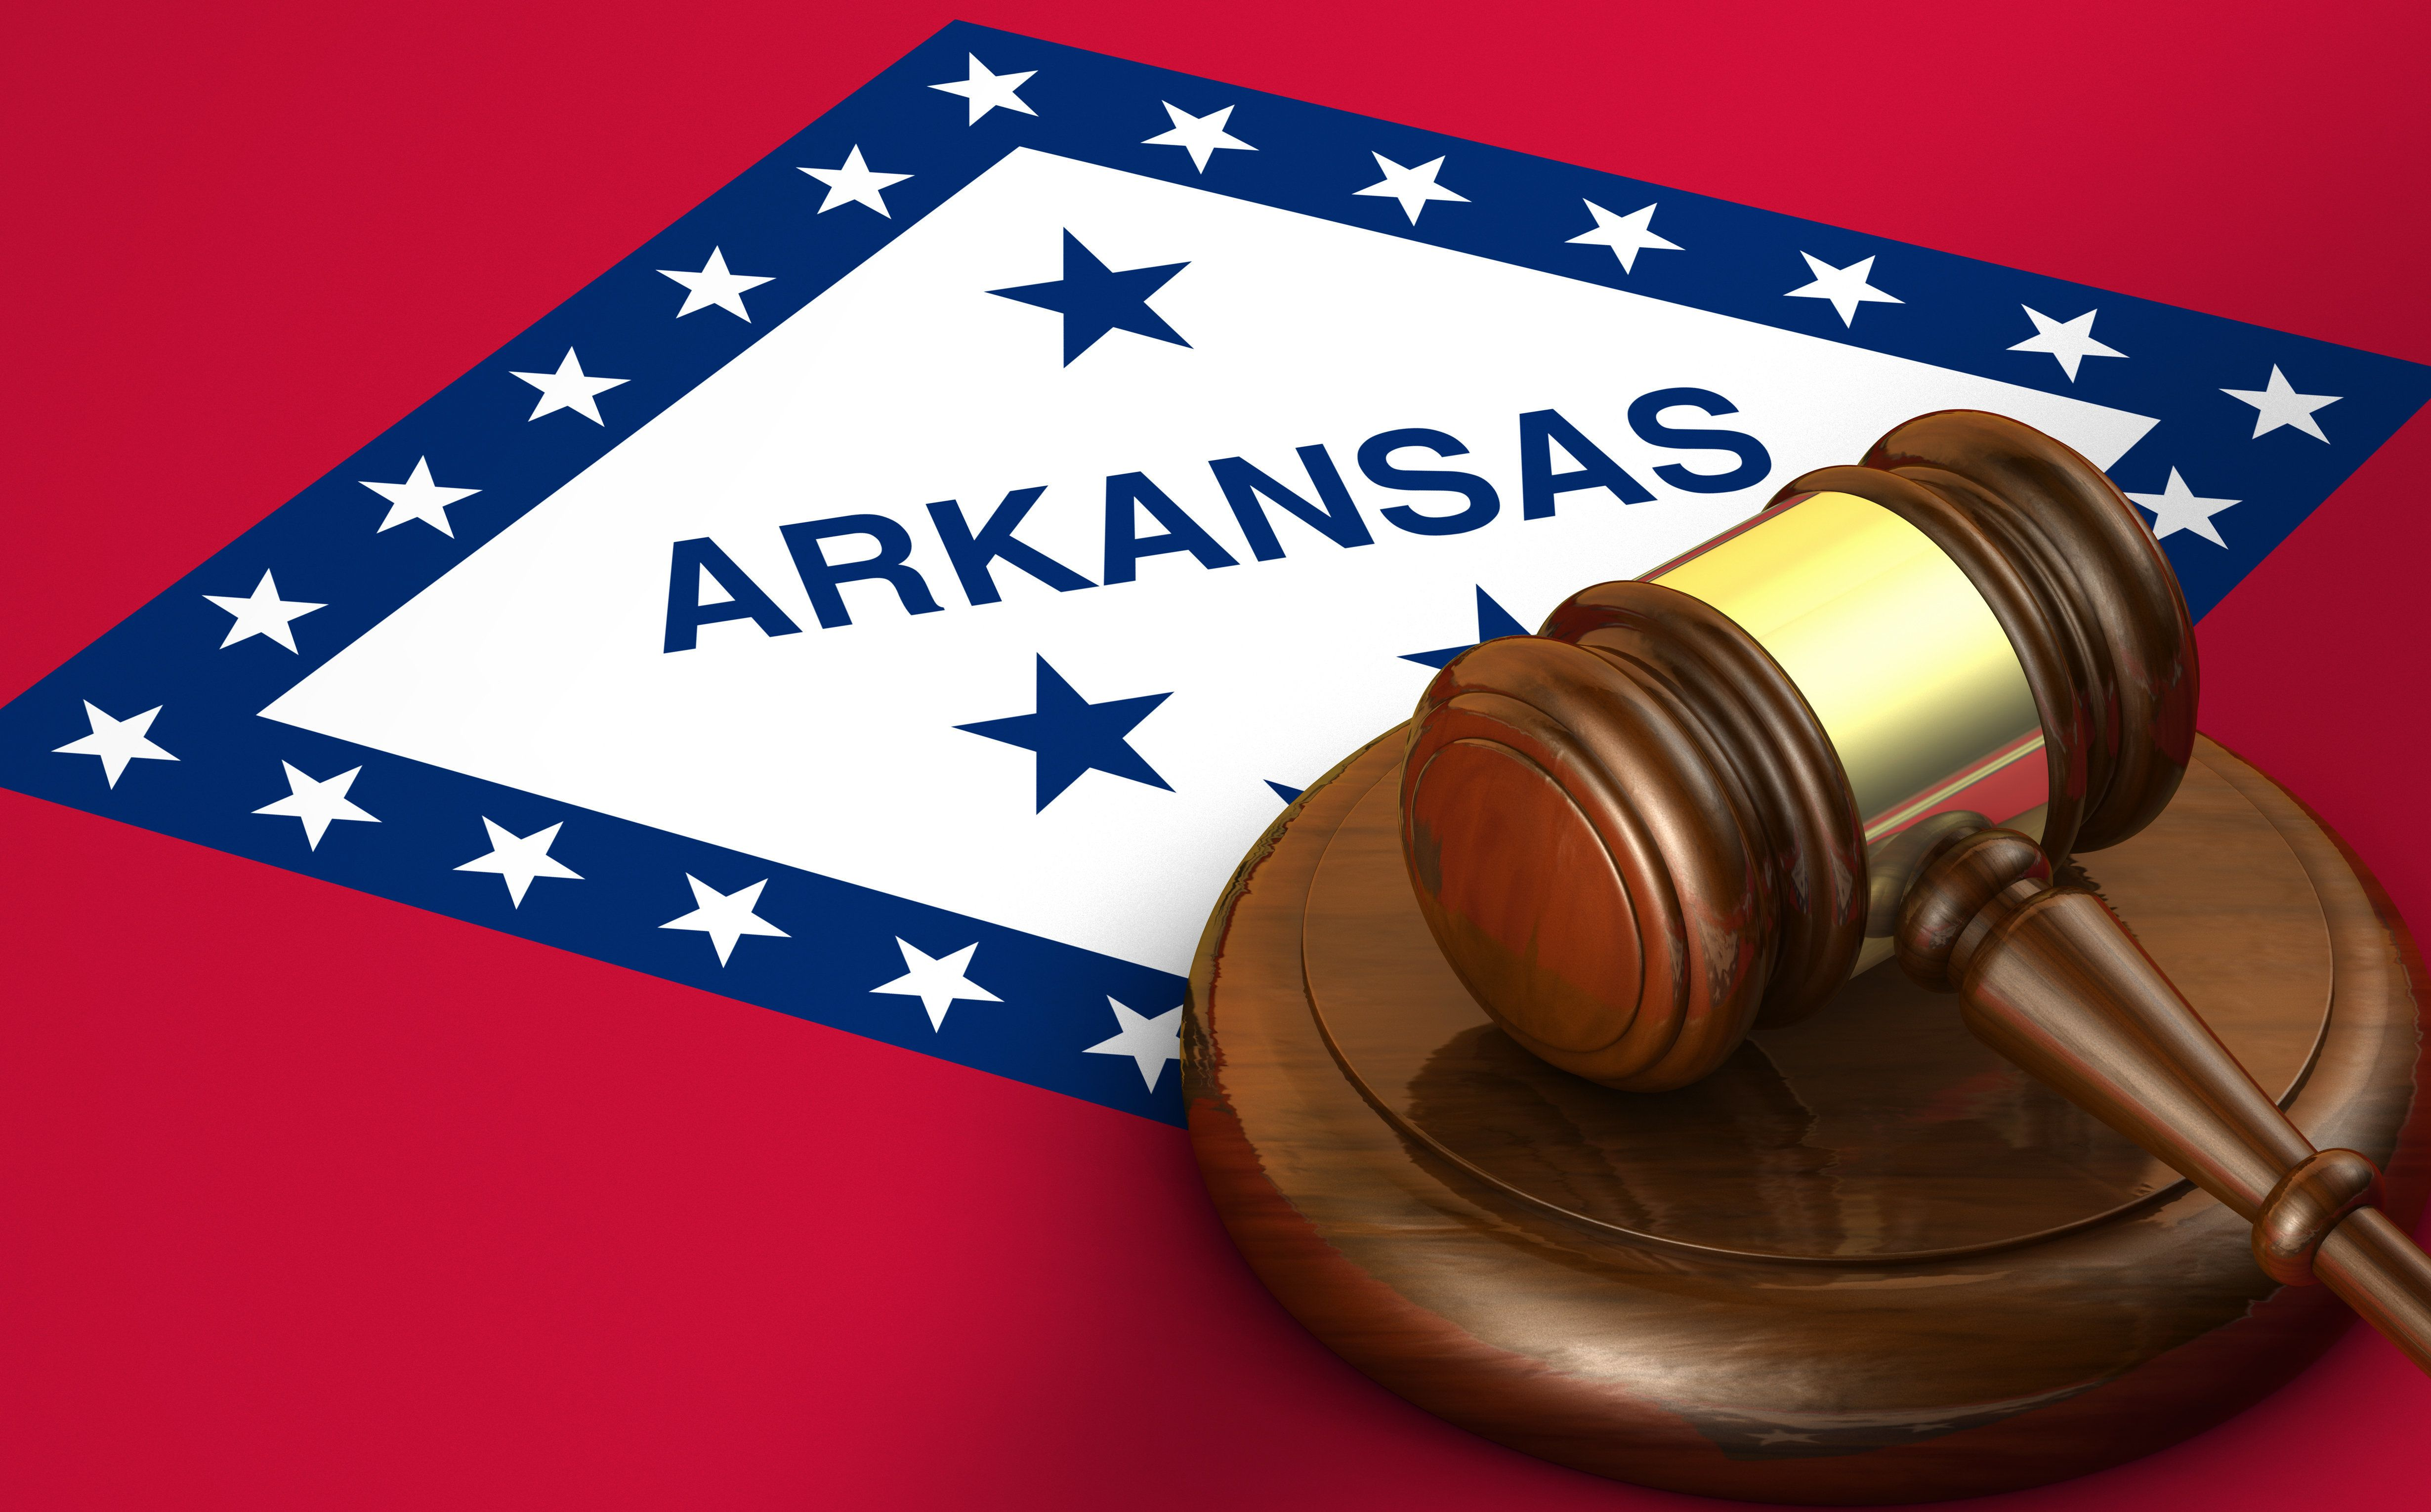 Arkansas US state law, code, legal system and justice concept with a 3d render of a gavel on the Arkansan flag on background.